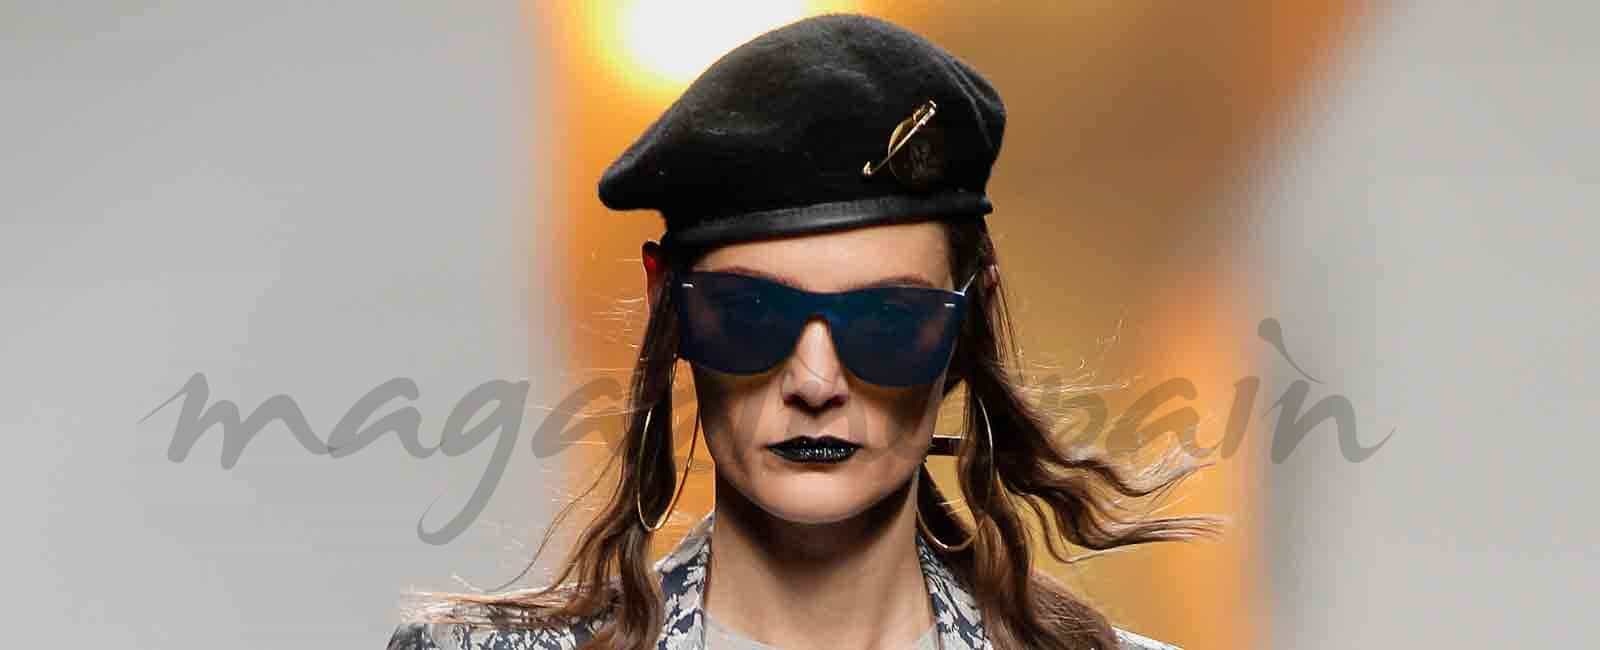 Mercedes Benz Fashion Week: Ana Locking Otoño-Invierno 2017/18